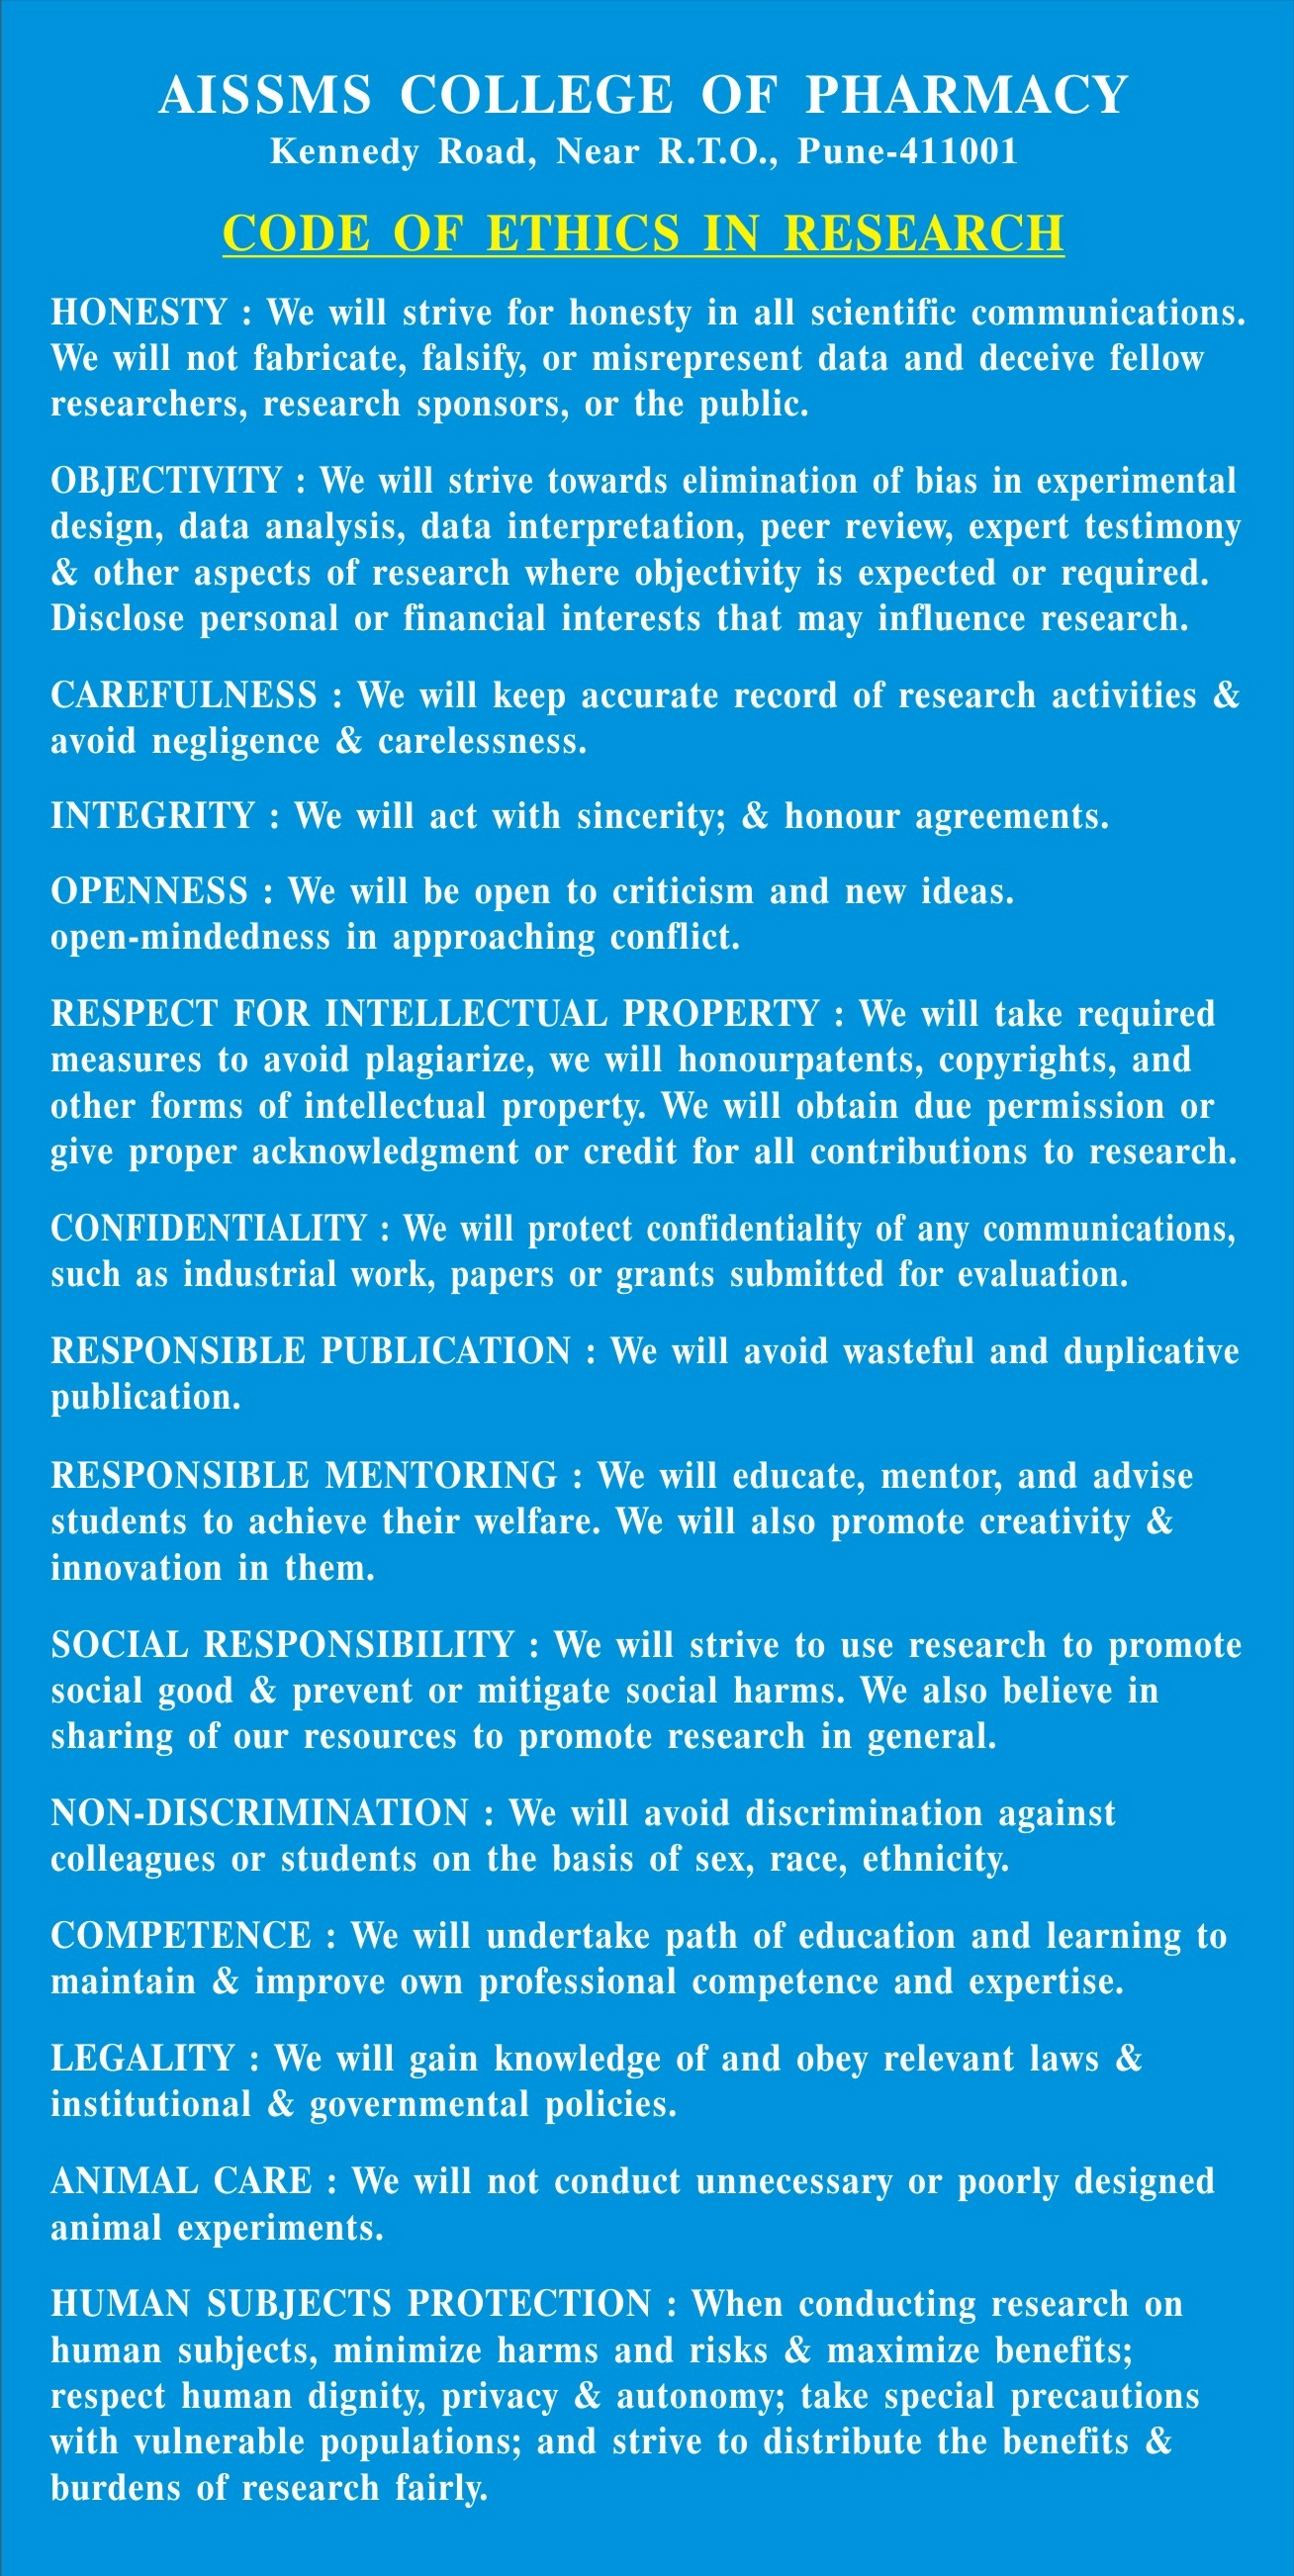 Code of Ethics in Research